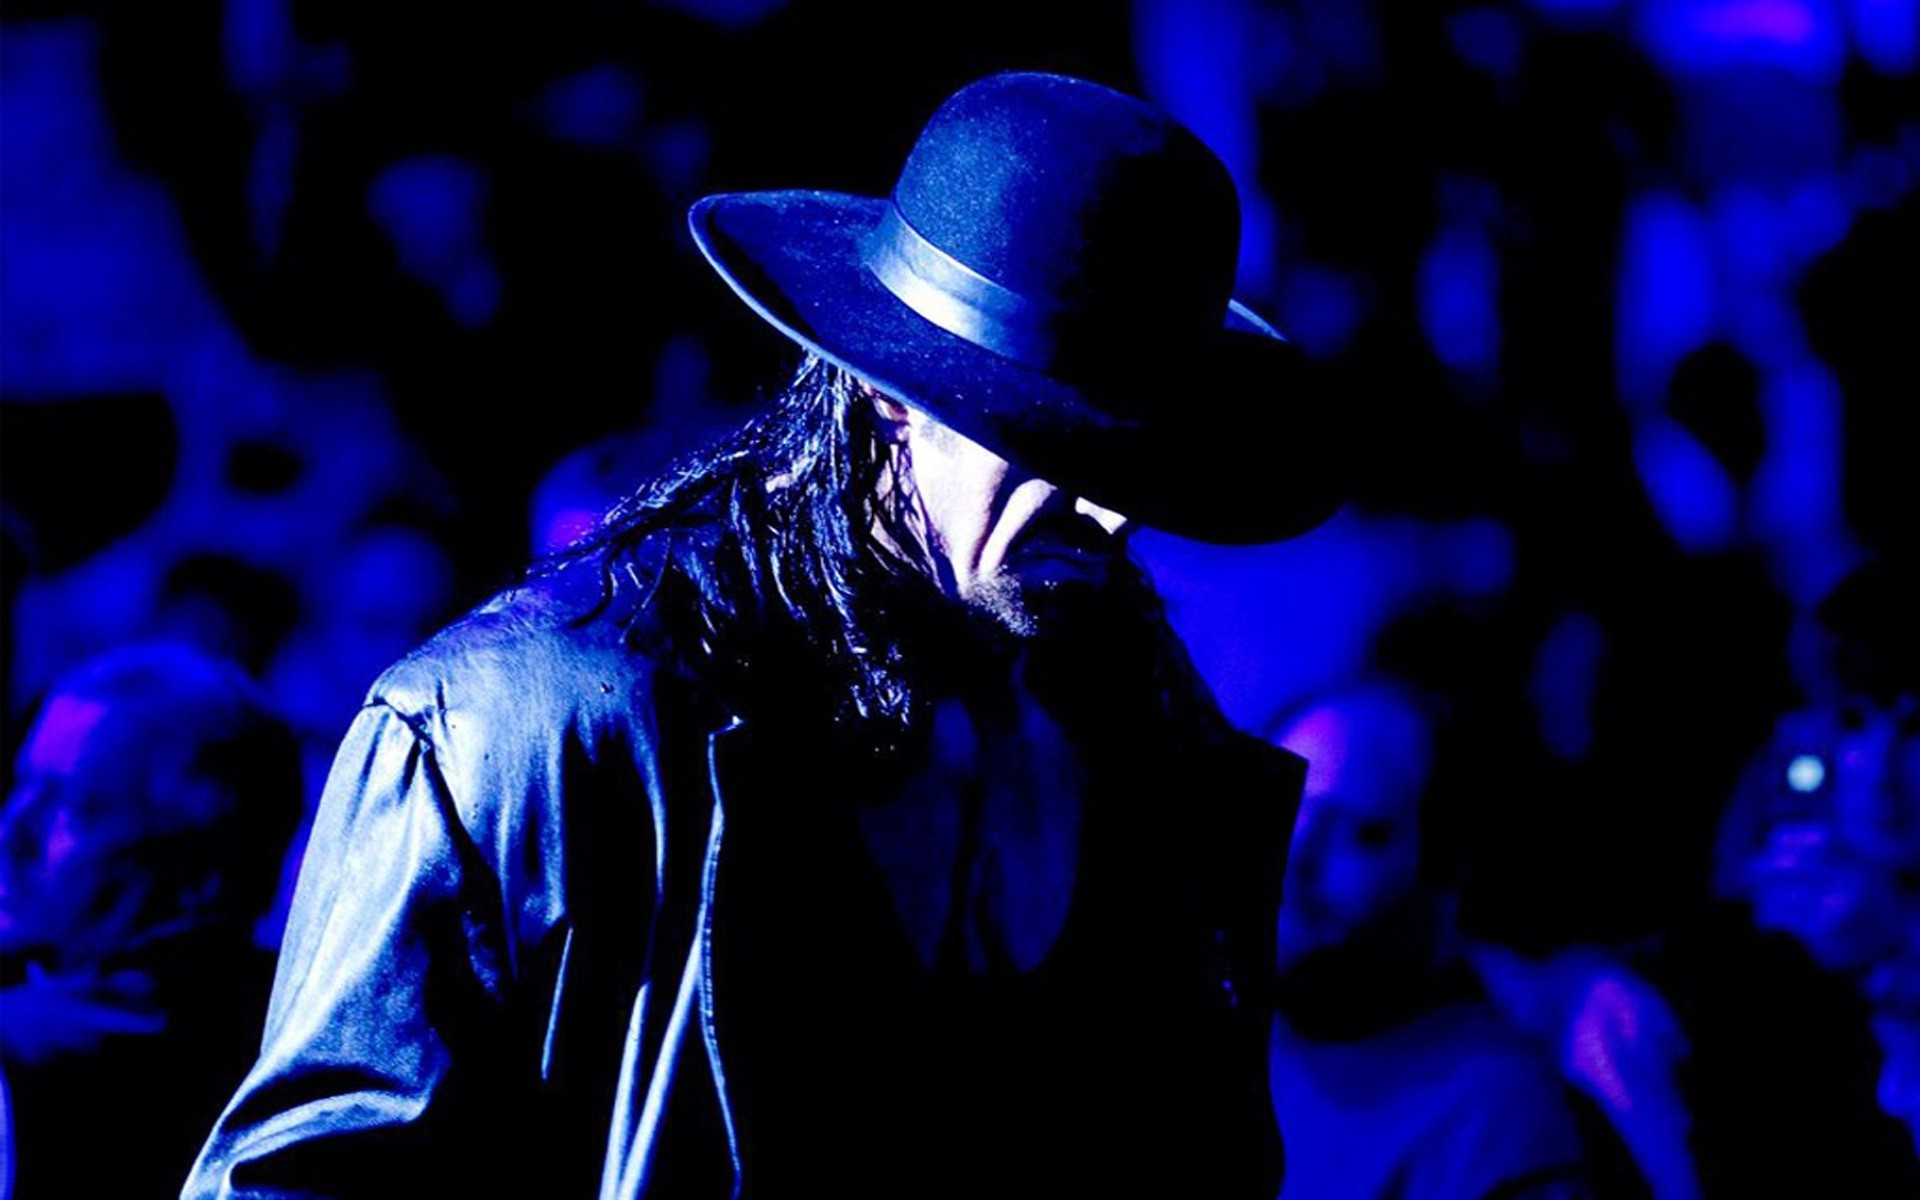 1920x1200  Undertaker Hd Wallpapers Free Download WWE HD WALLPAPER FREE  960×768 Undertaker Wallpaper (54